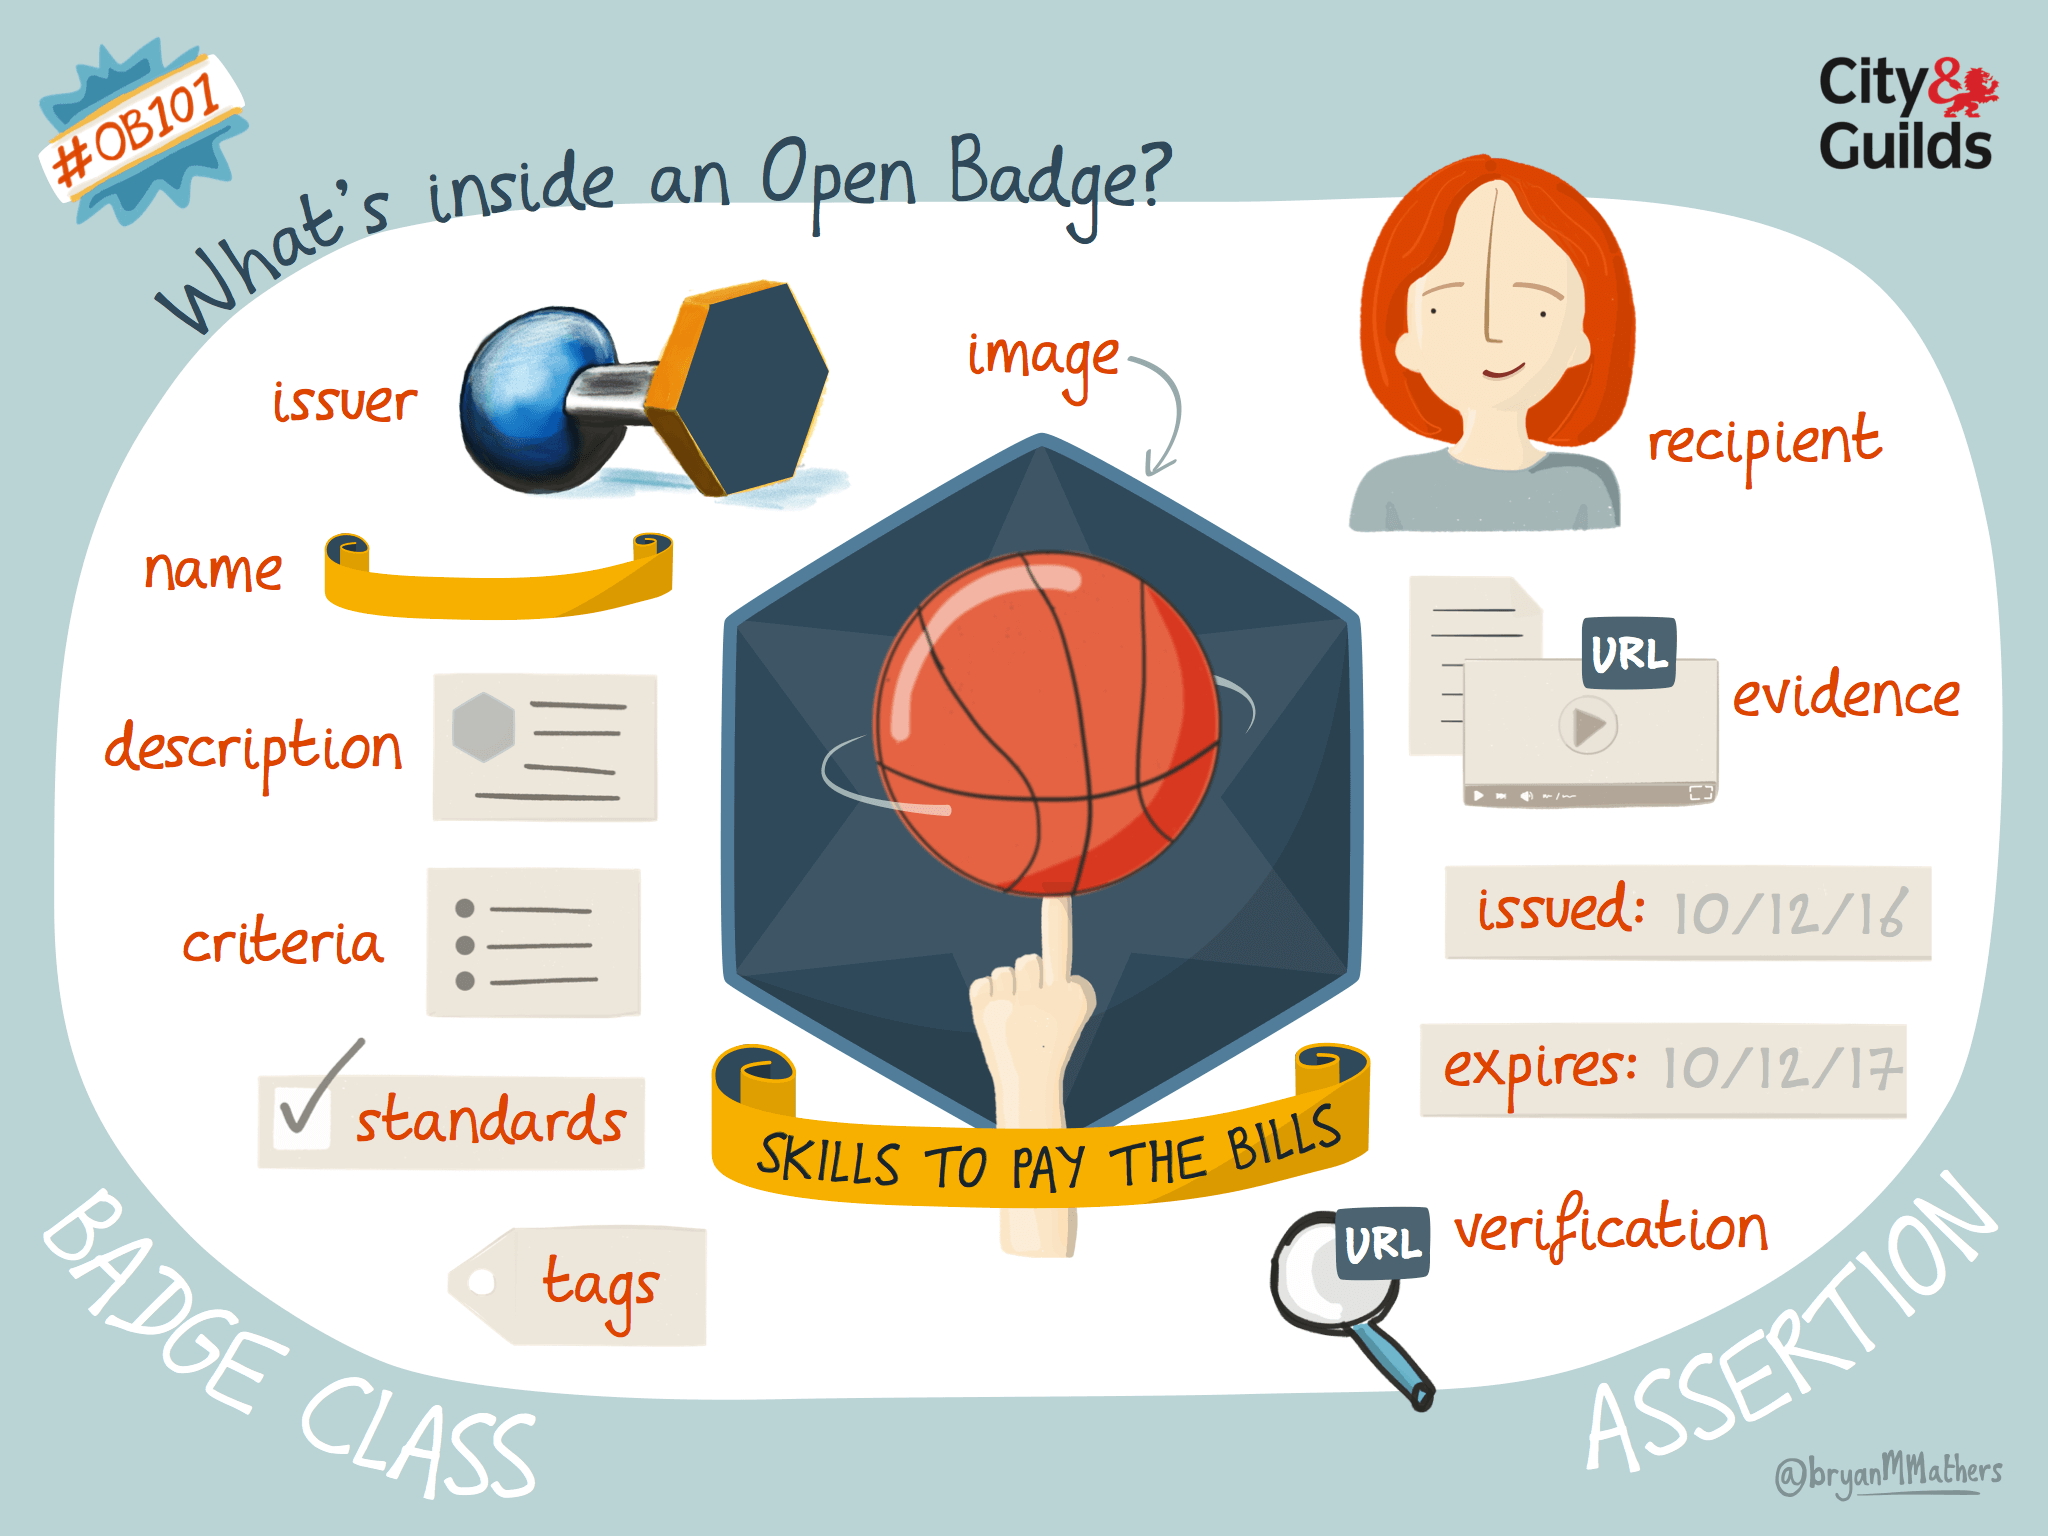 What's inside an Open Badge